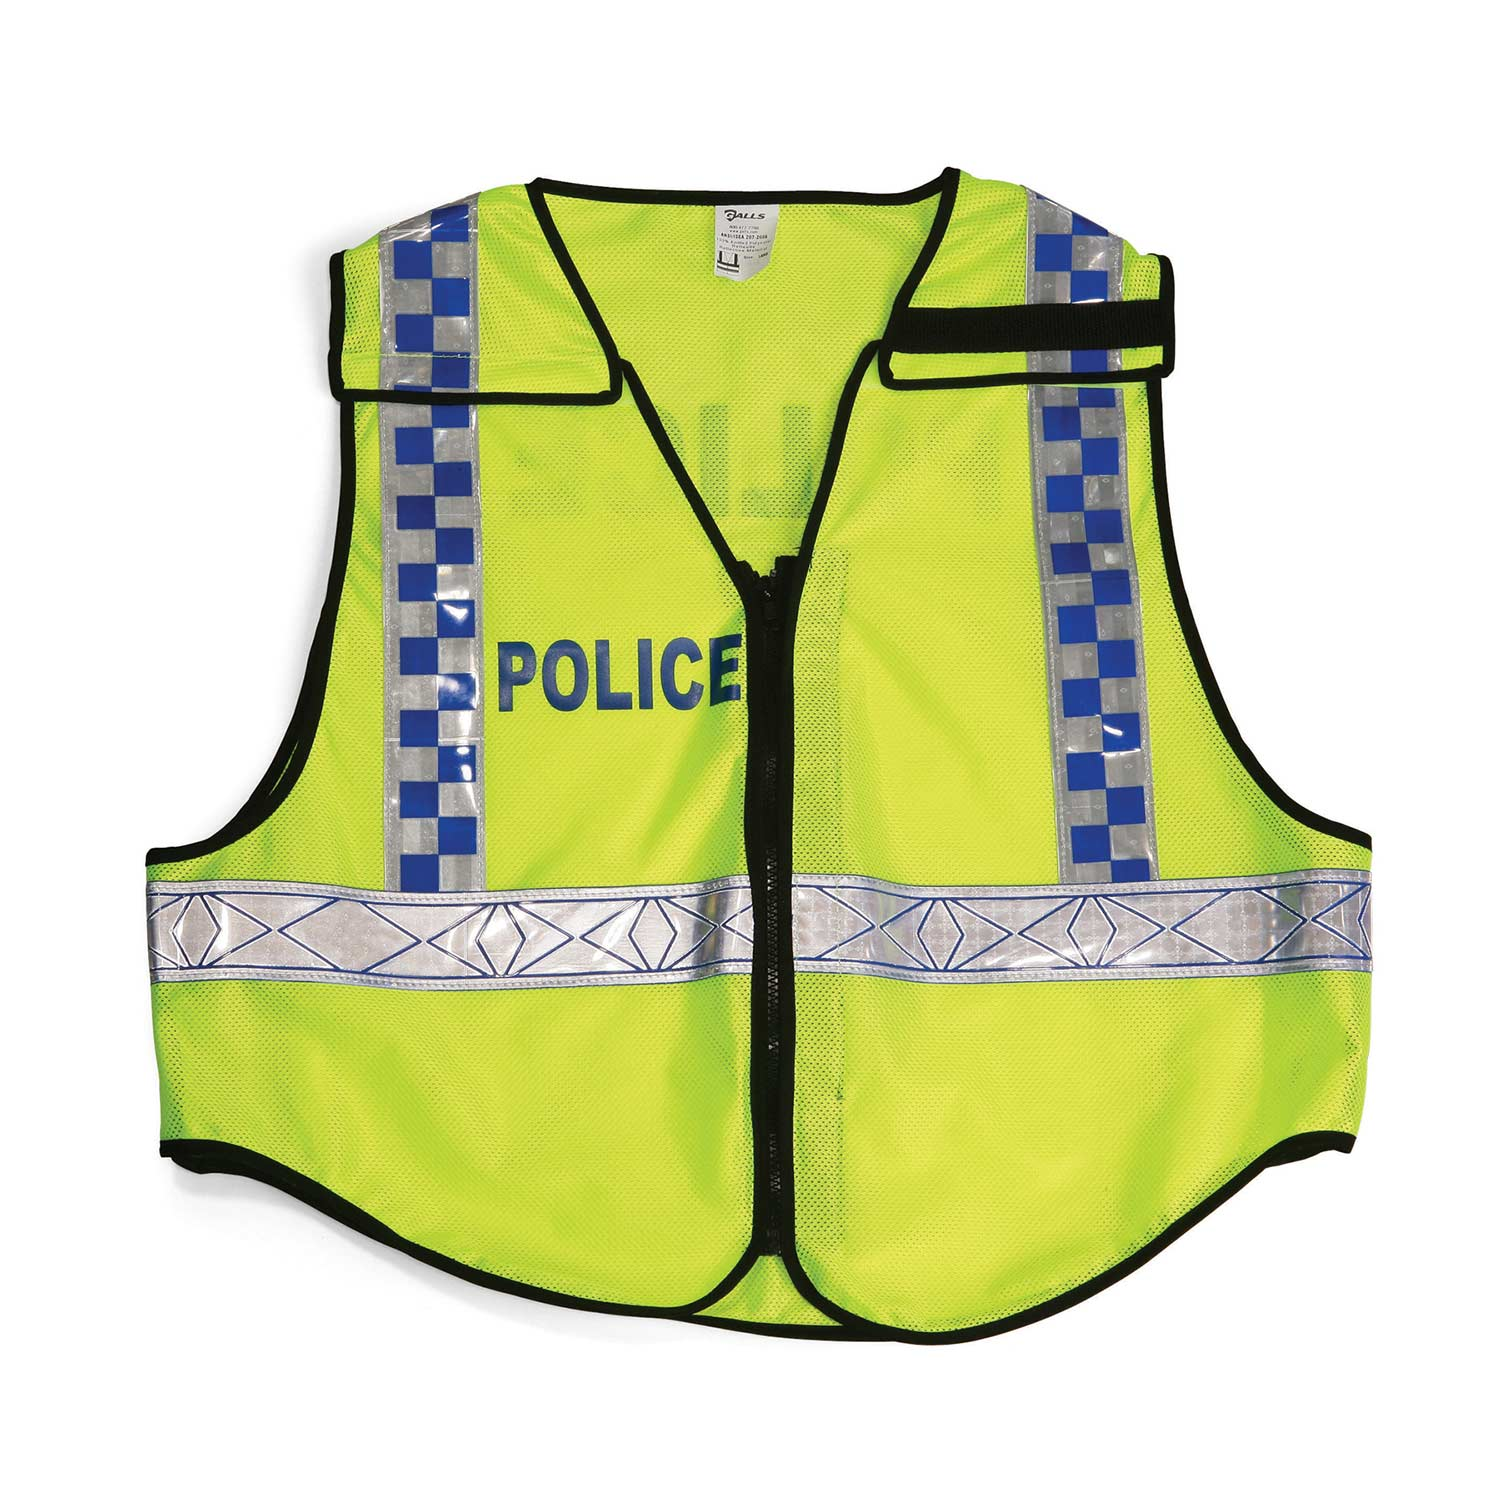 Galls Zip-N-Rip ANSI 207 Public Safety Traffic Vest